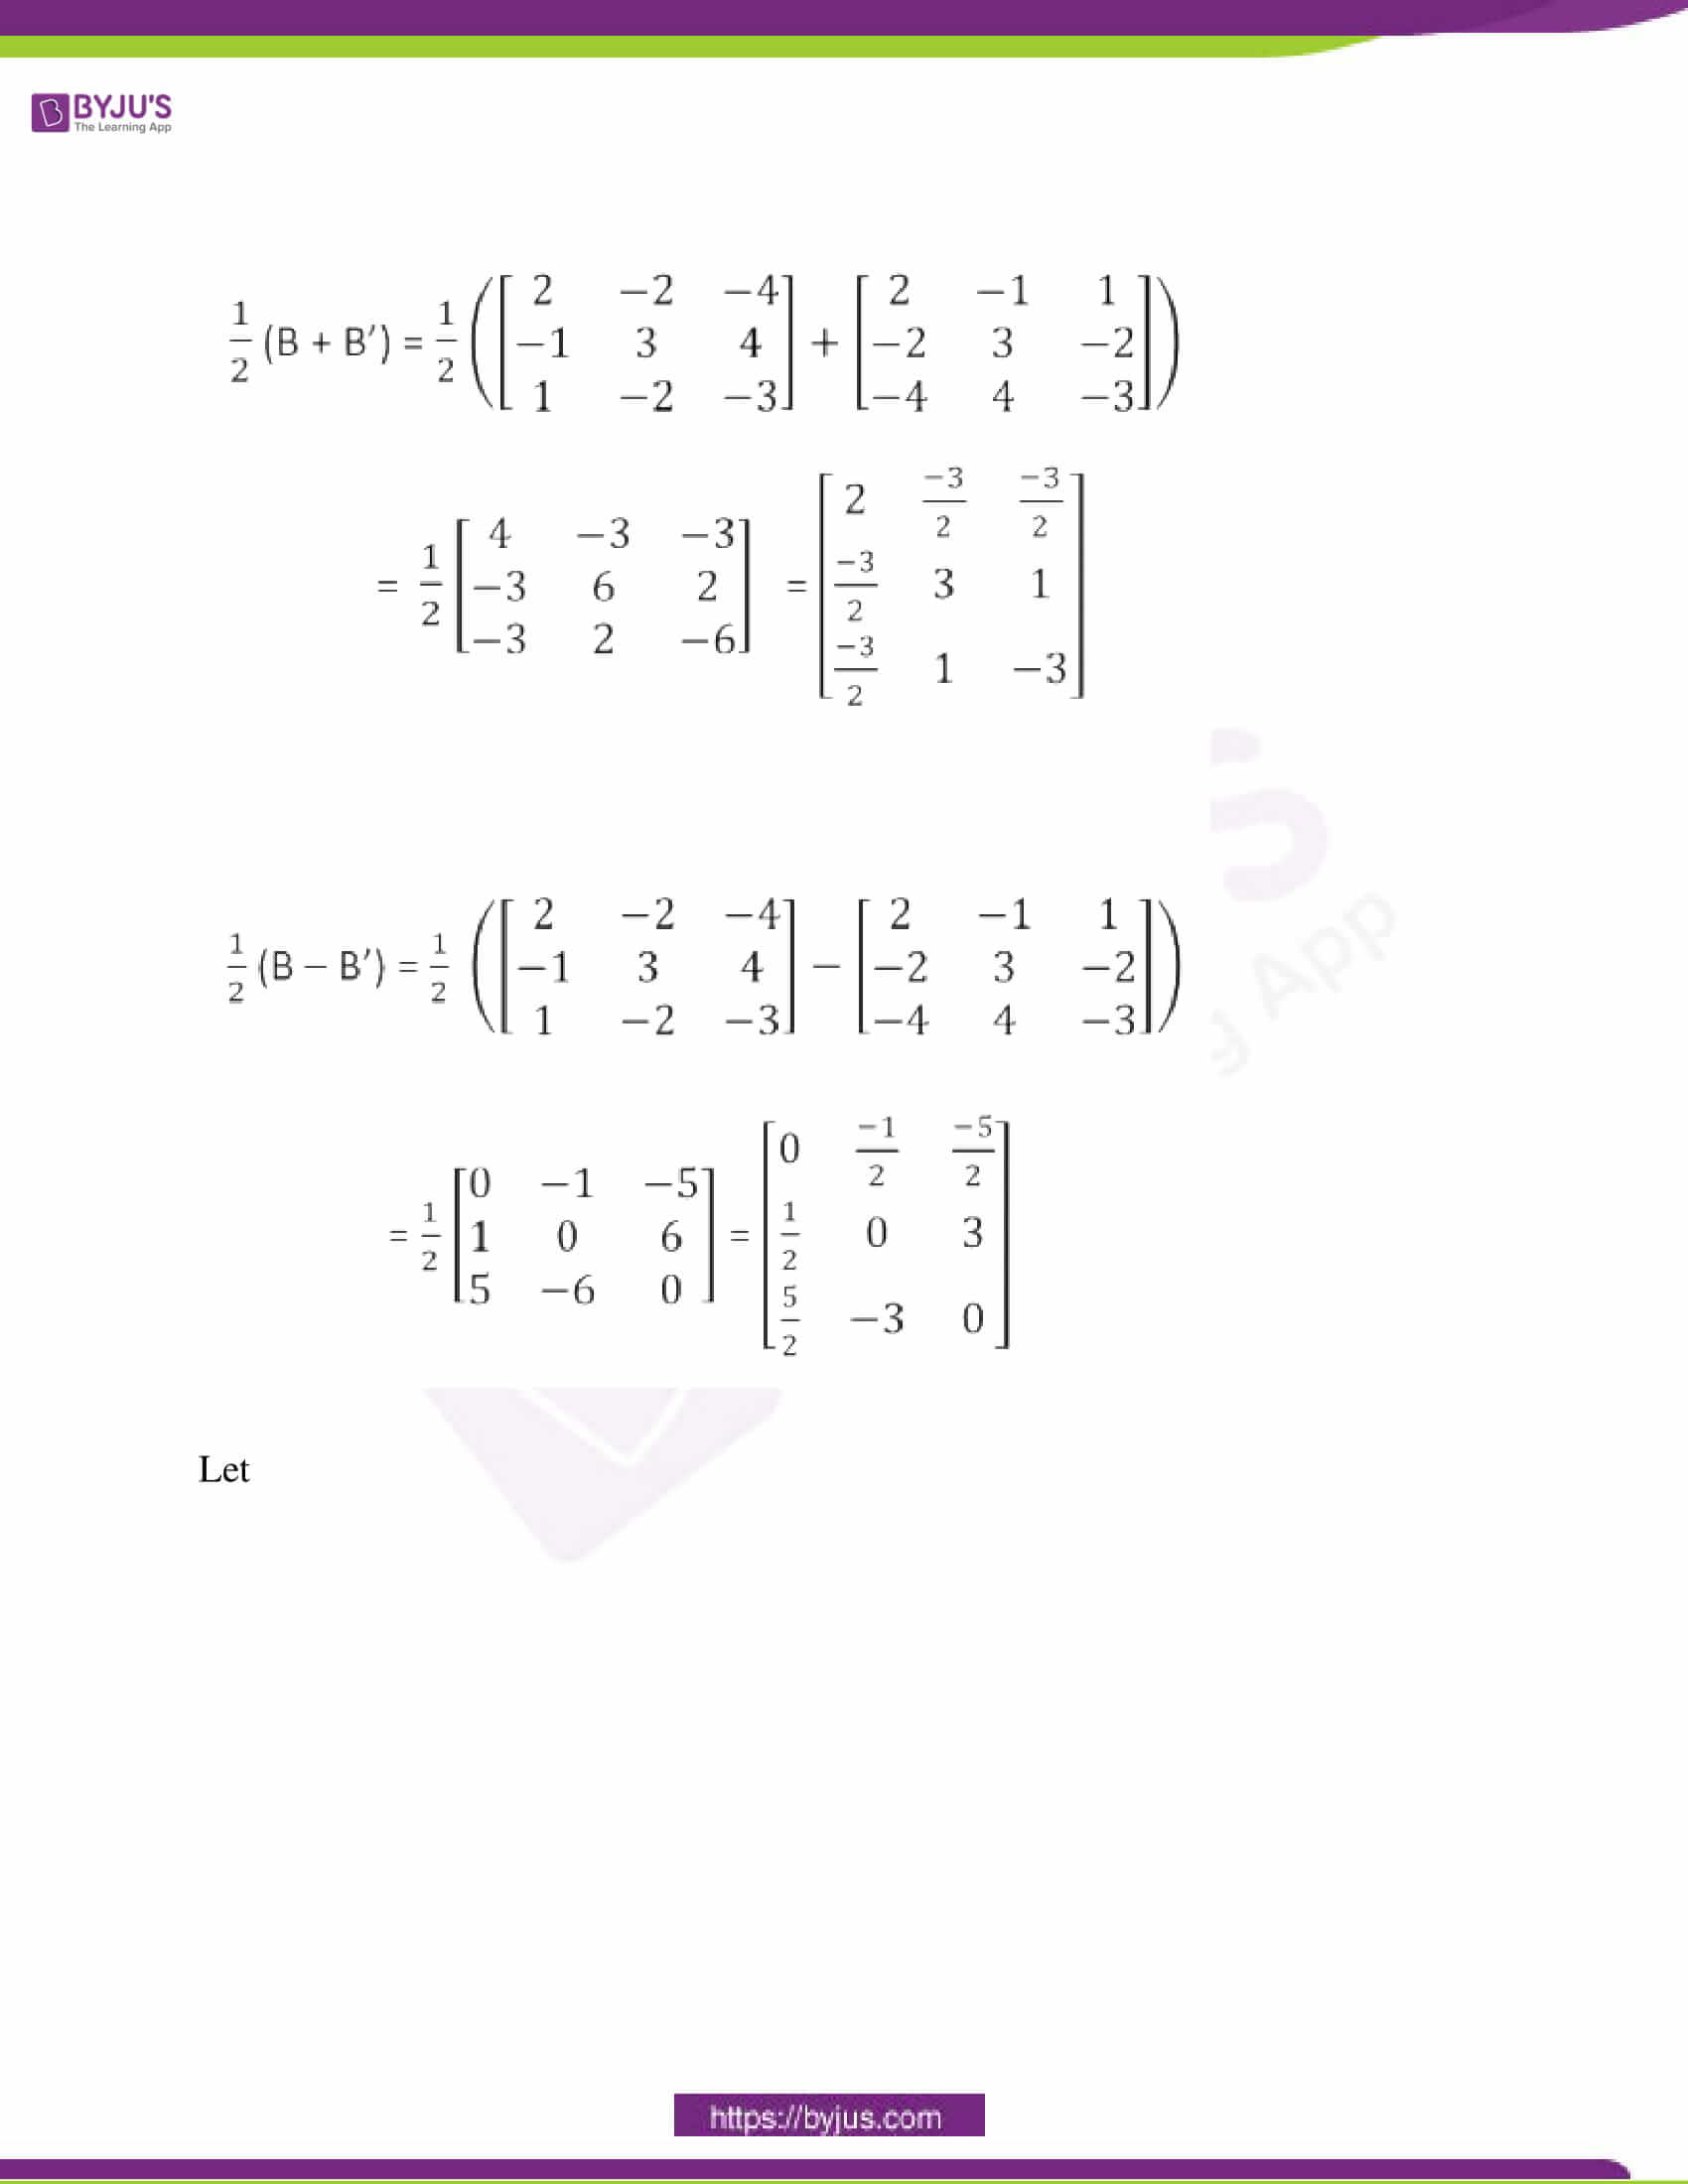 mp board class 12 questions and answers maths 2020 32